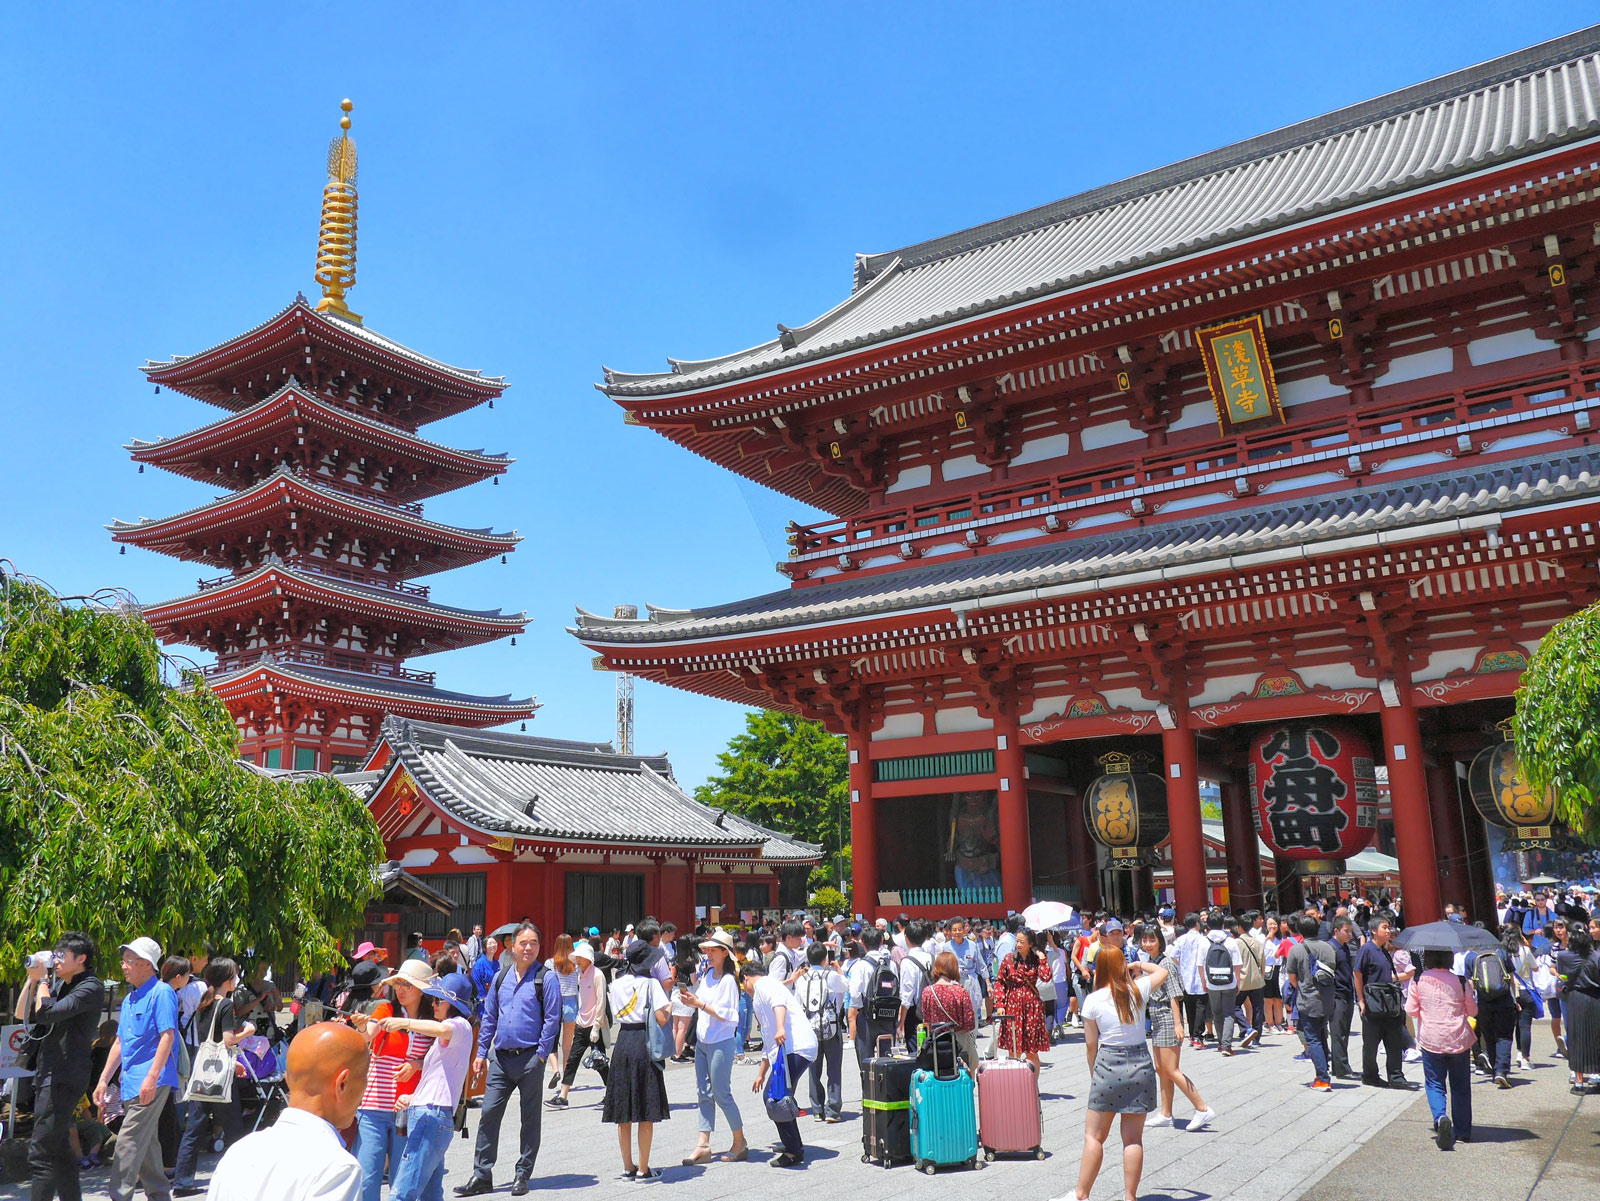 Senso-ji: Marvel at Tokyo's Oldest, Most Colourful Temple - Tokyo, Japan